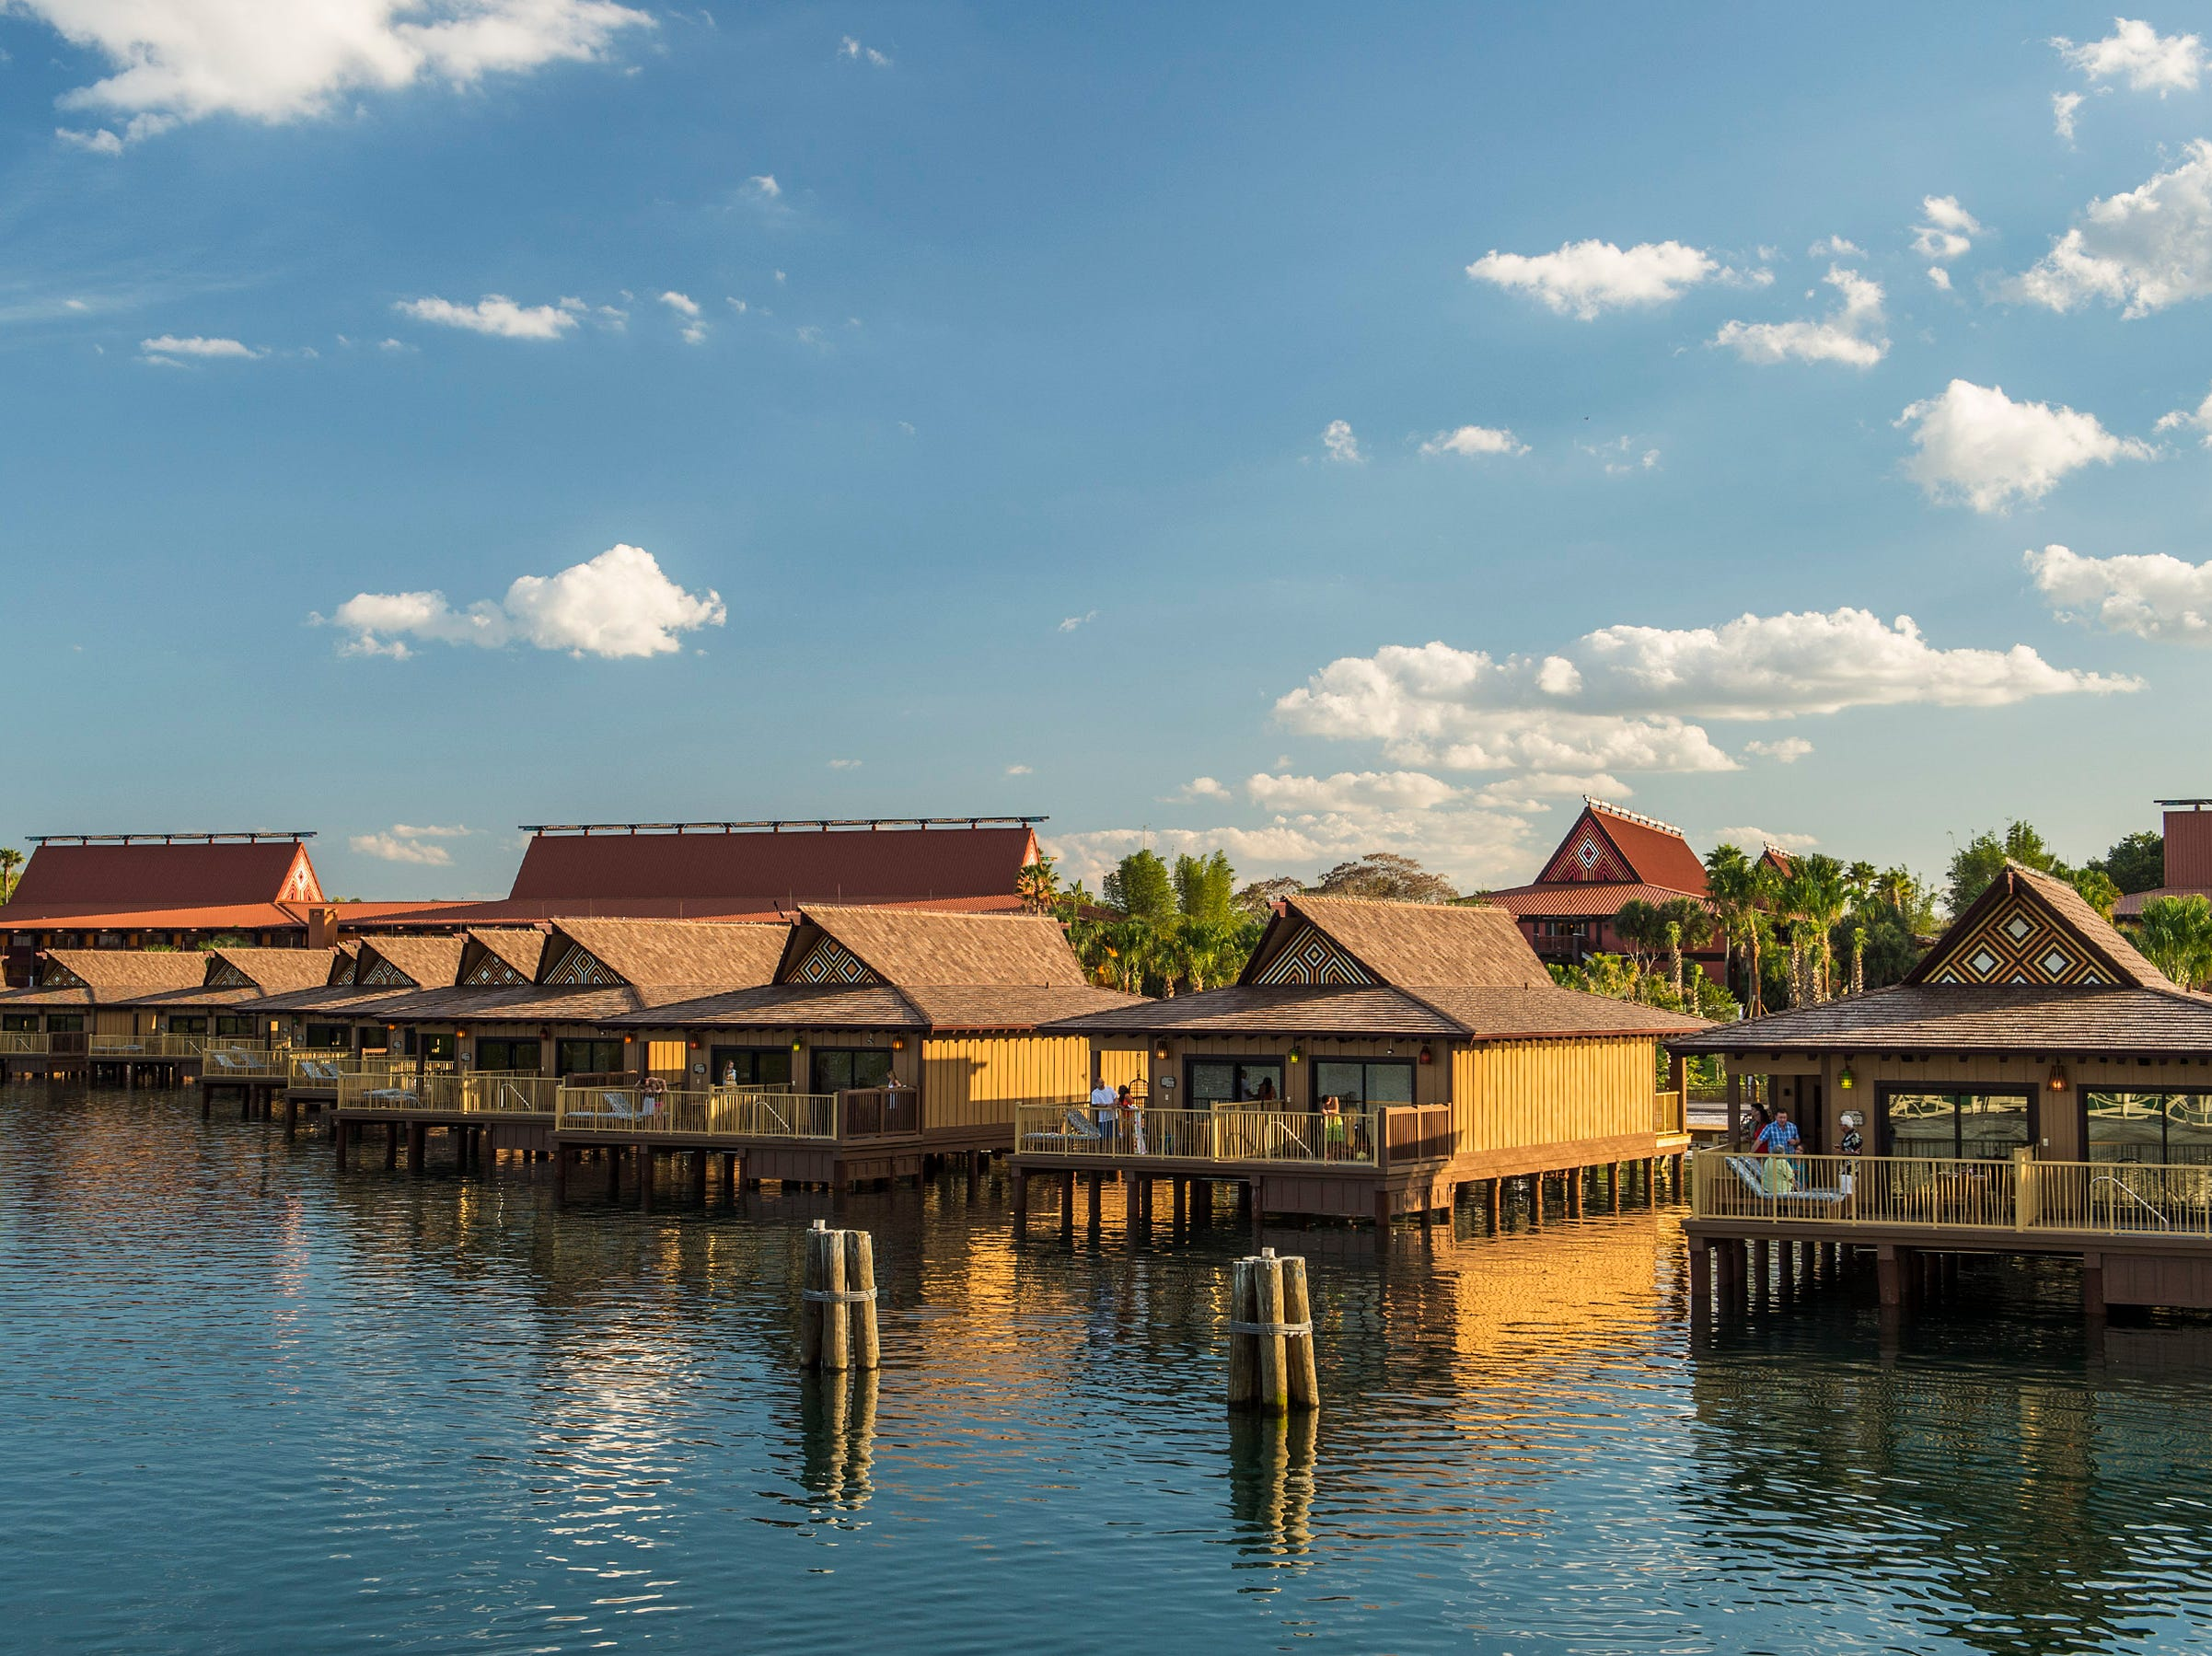 Orlando is one of Travelzoo's top picks for January. Flights from Atlanta start at $53 each way. The bungalows at the Polynesian Village Resort in Disney World are a popular spot.